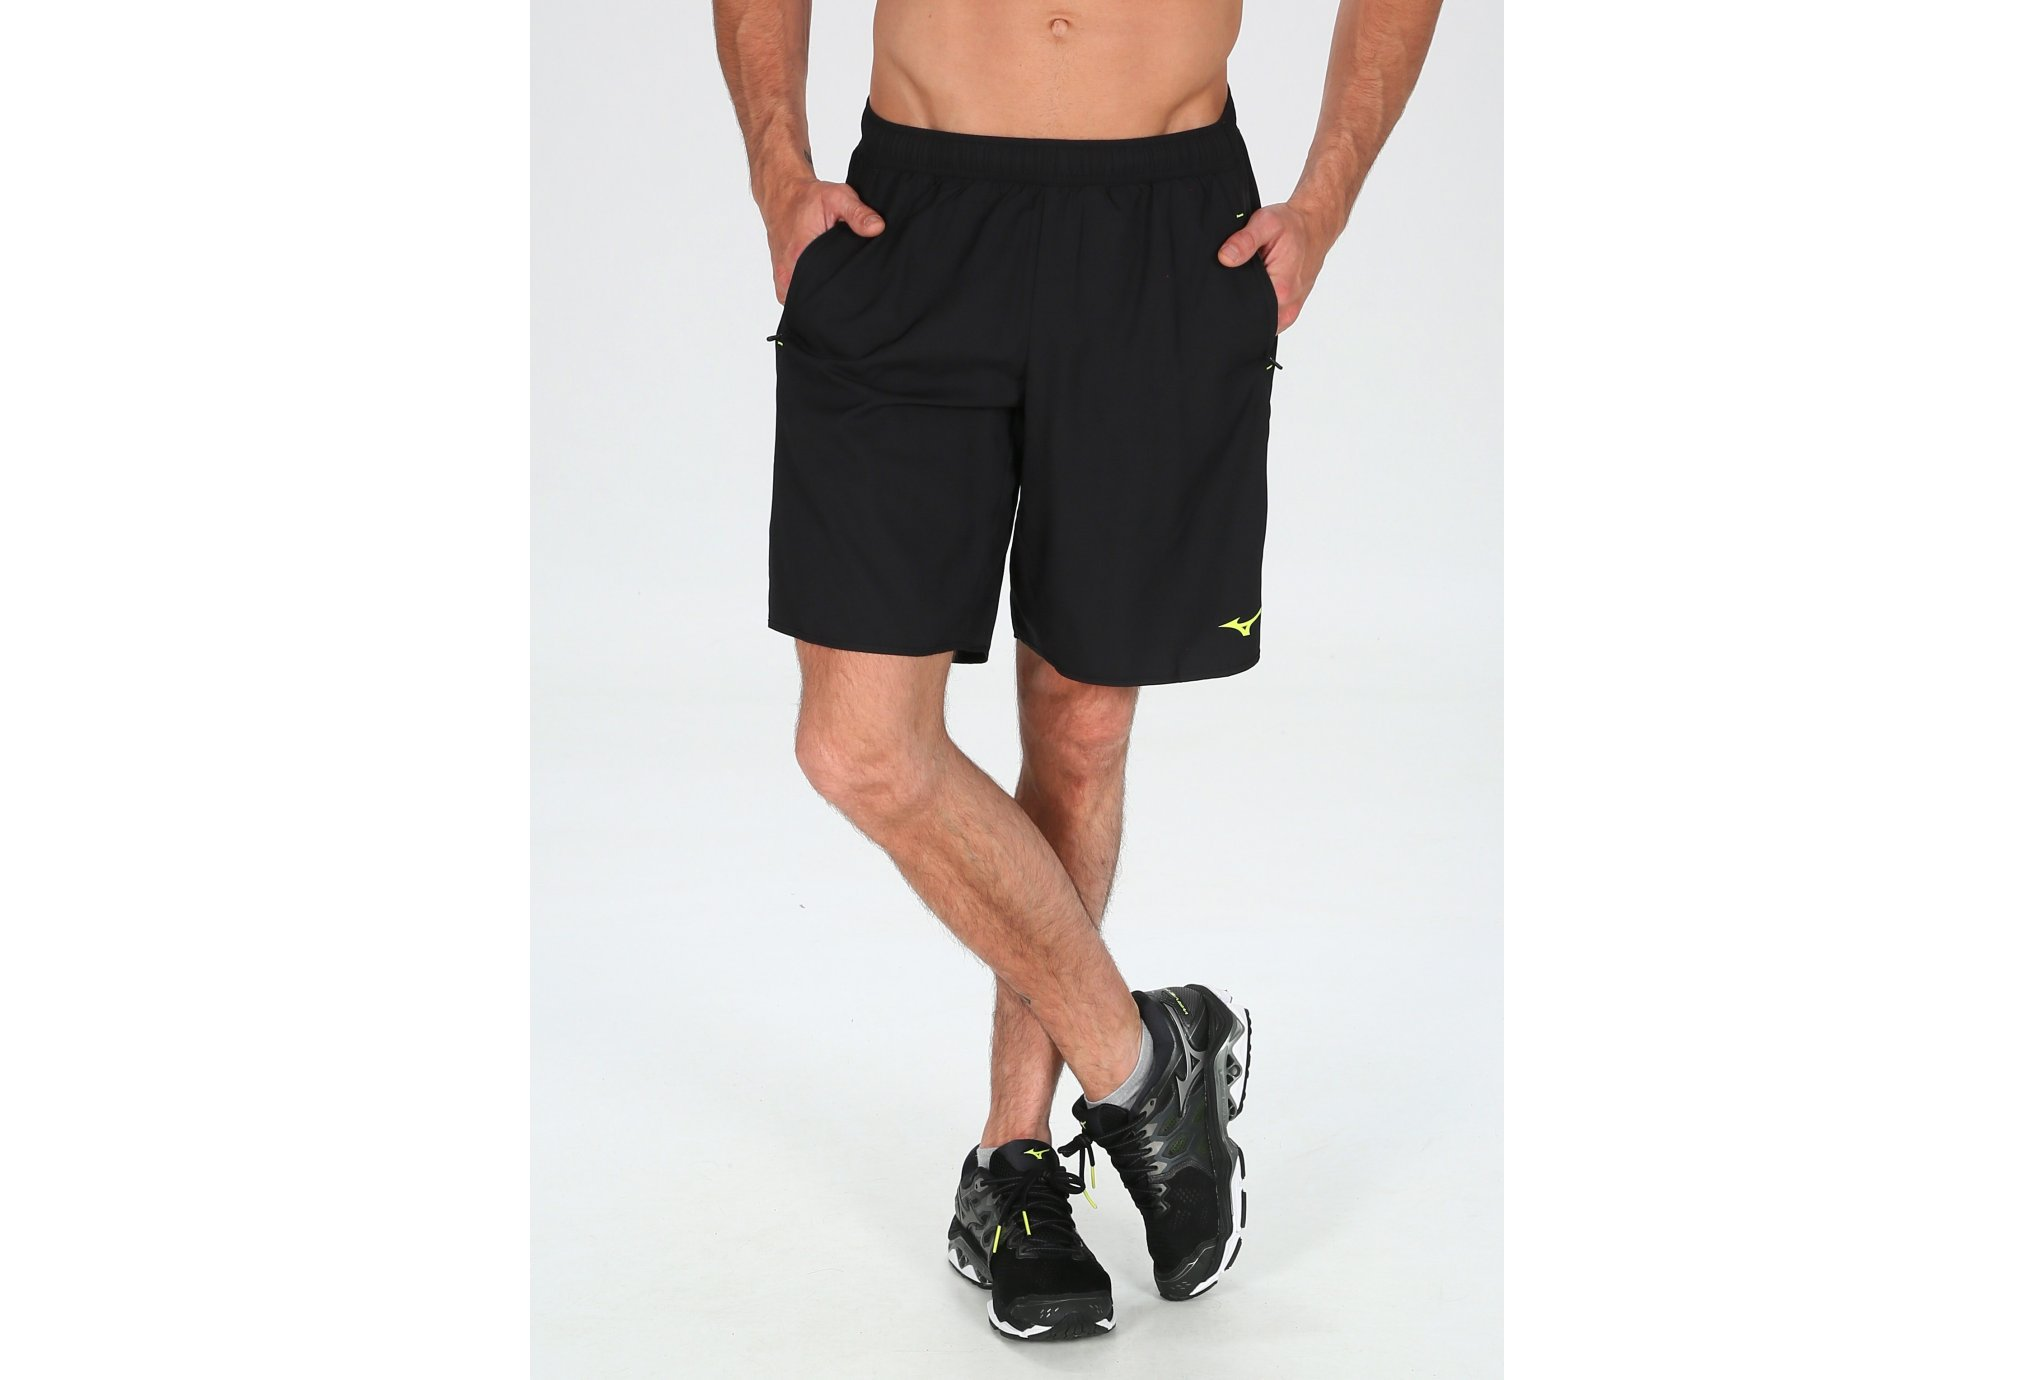 Mizuno Short DryLite Square 8.5 M vêtement running homme